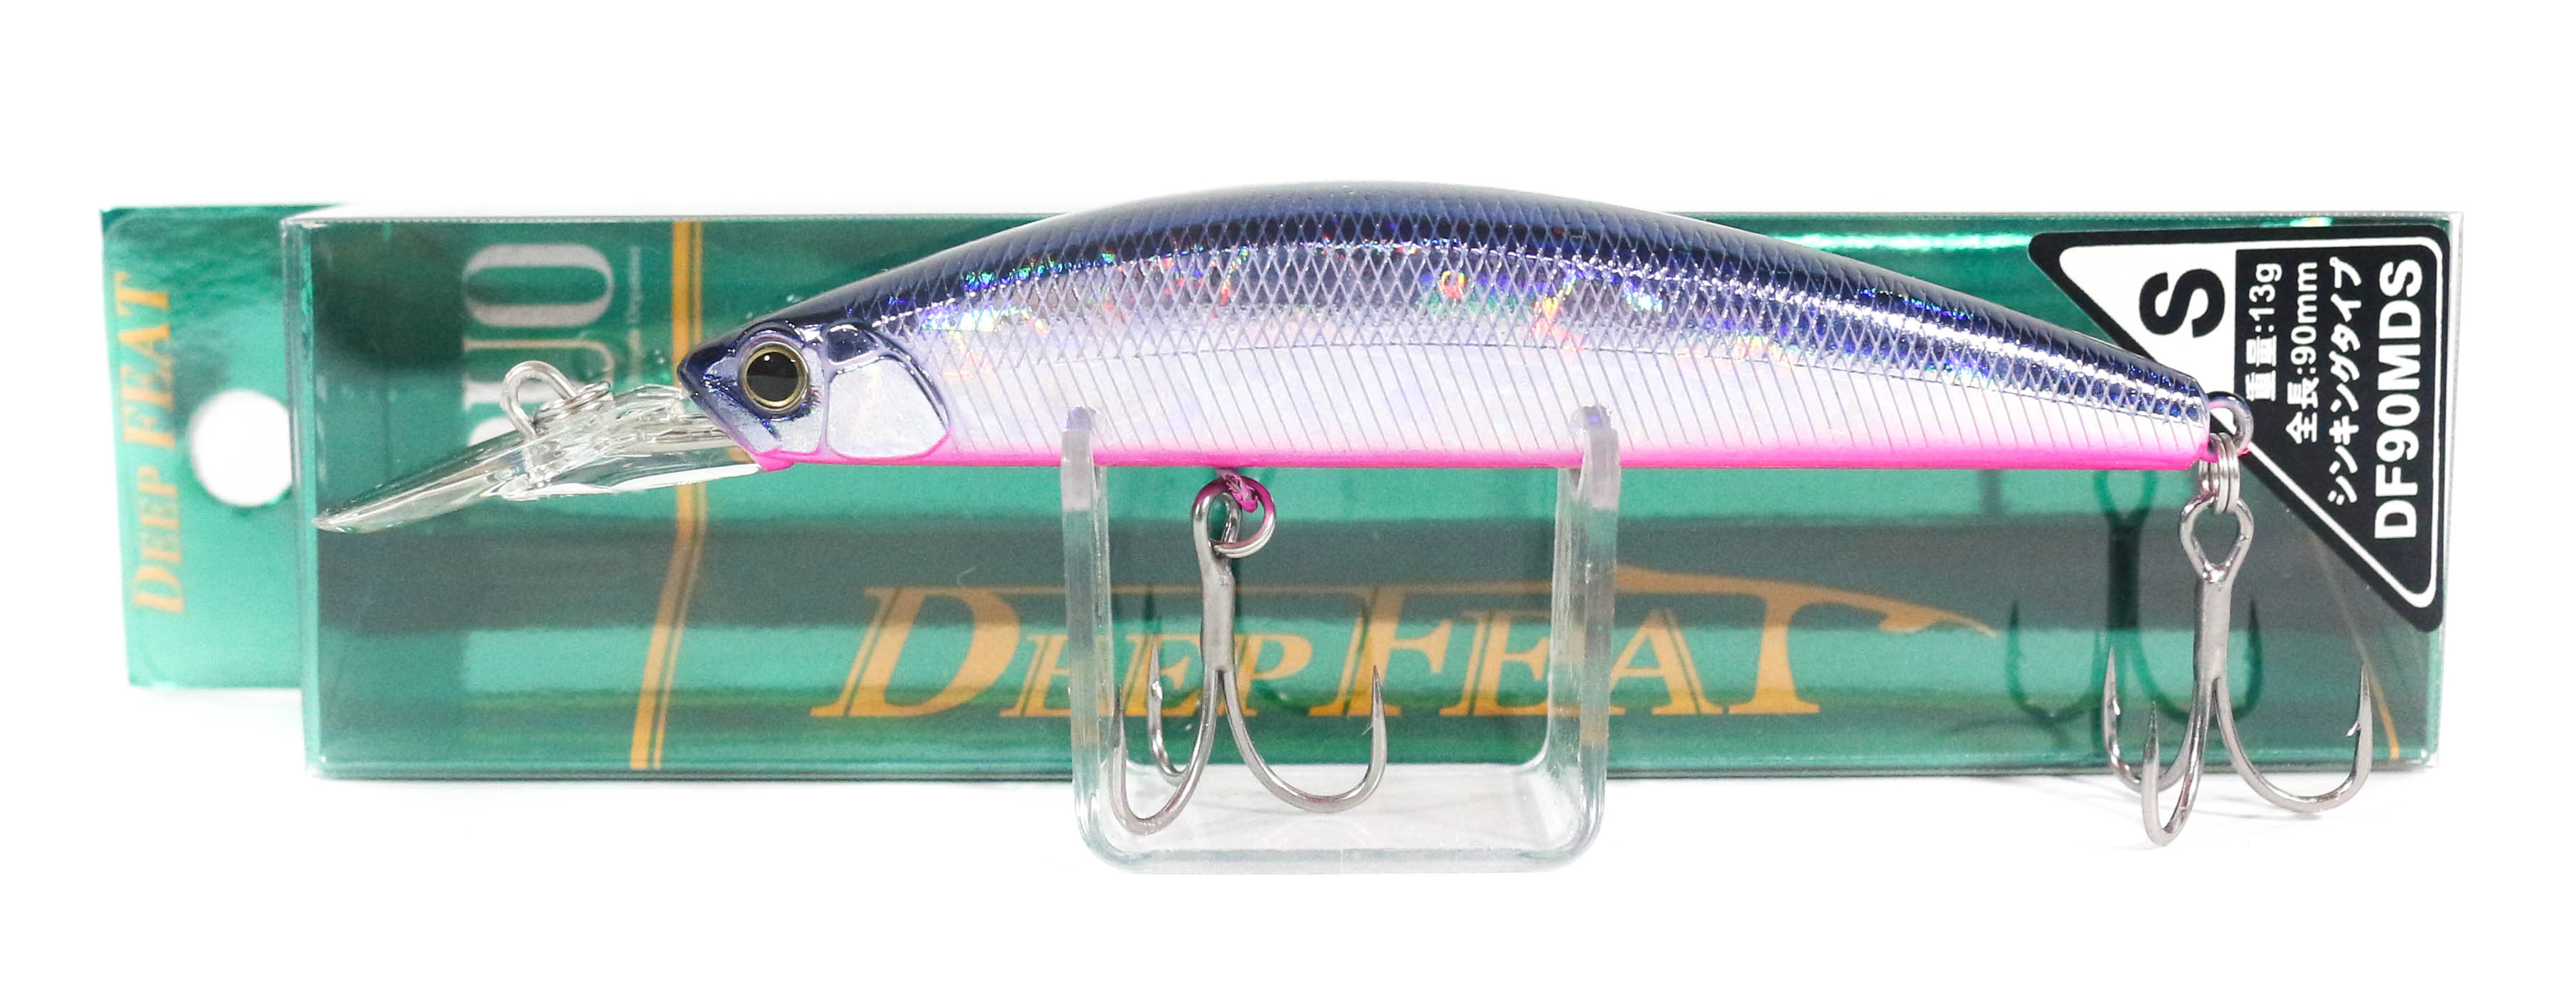 Duo Deep Feat 90 MDS Diving Sinking Lure ADA4130 (6602)